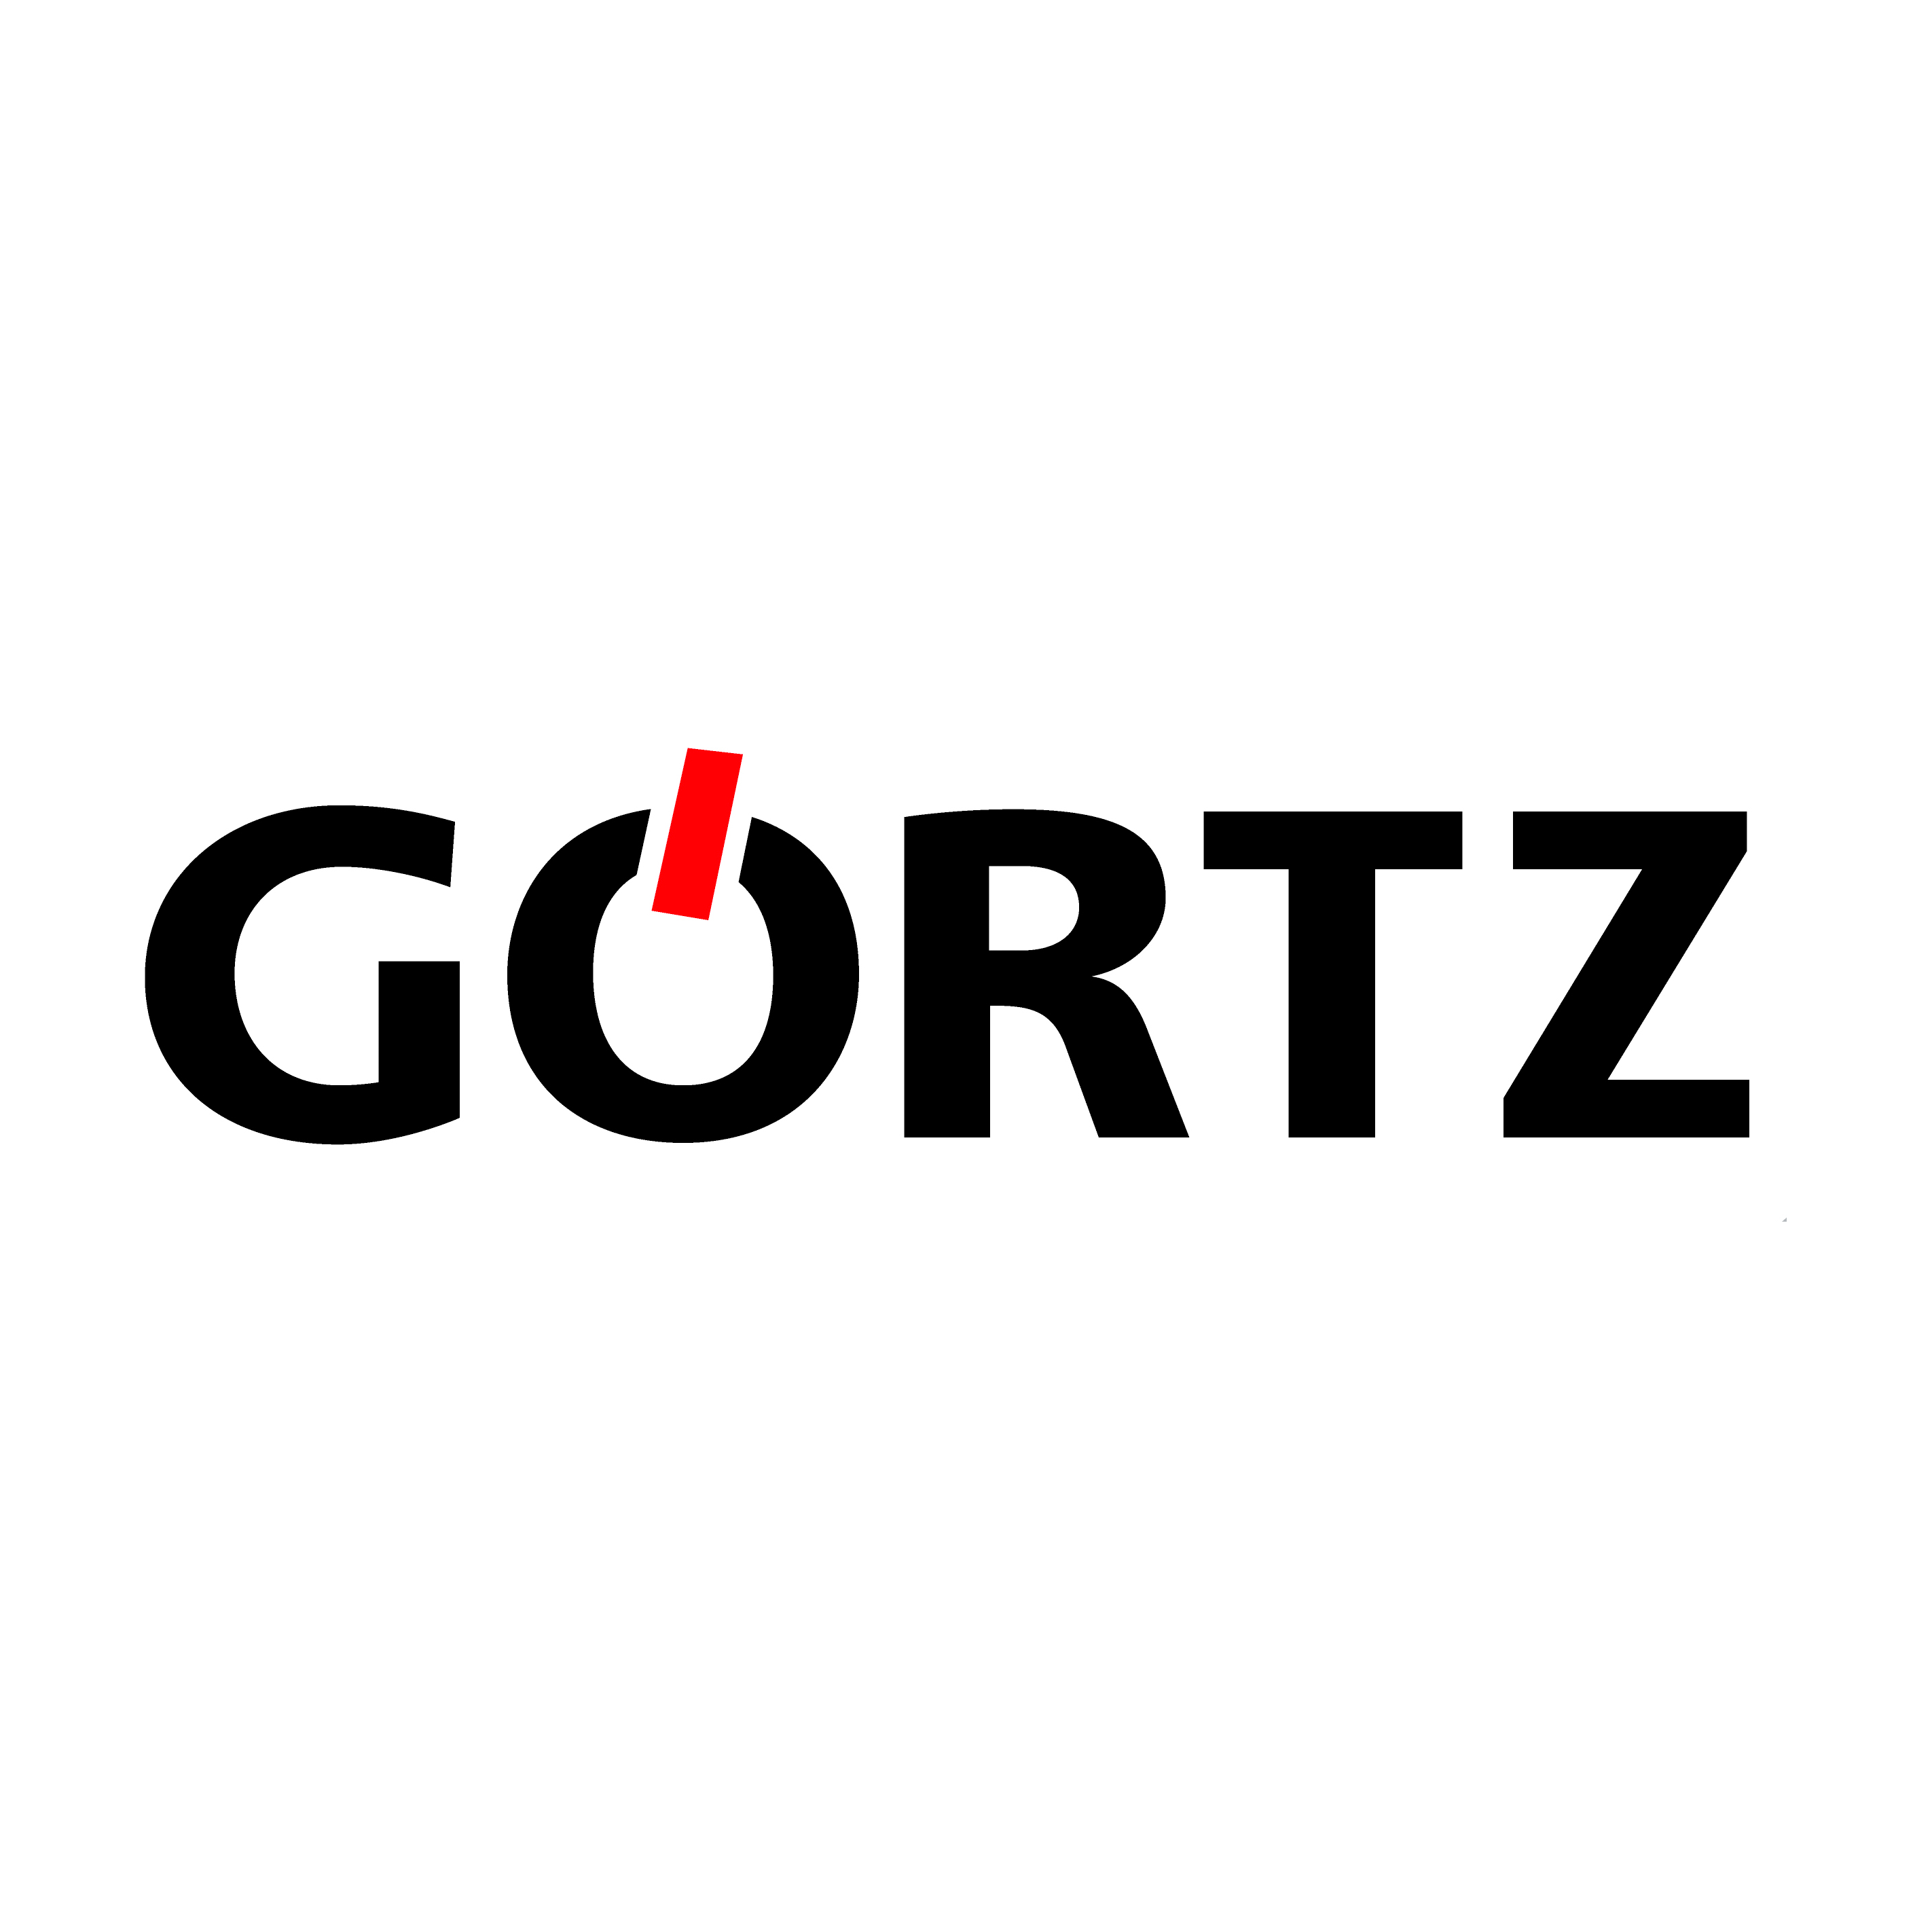 beb0cac35d02d8 ▷ Görtz Outlet ✓ in Frankfurt am Main